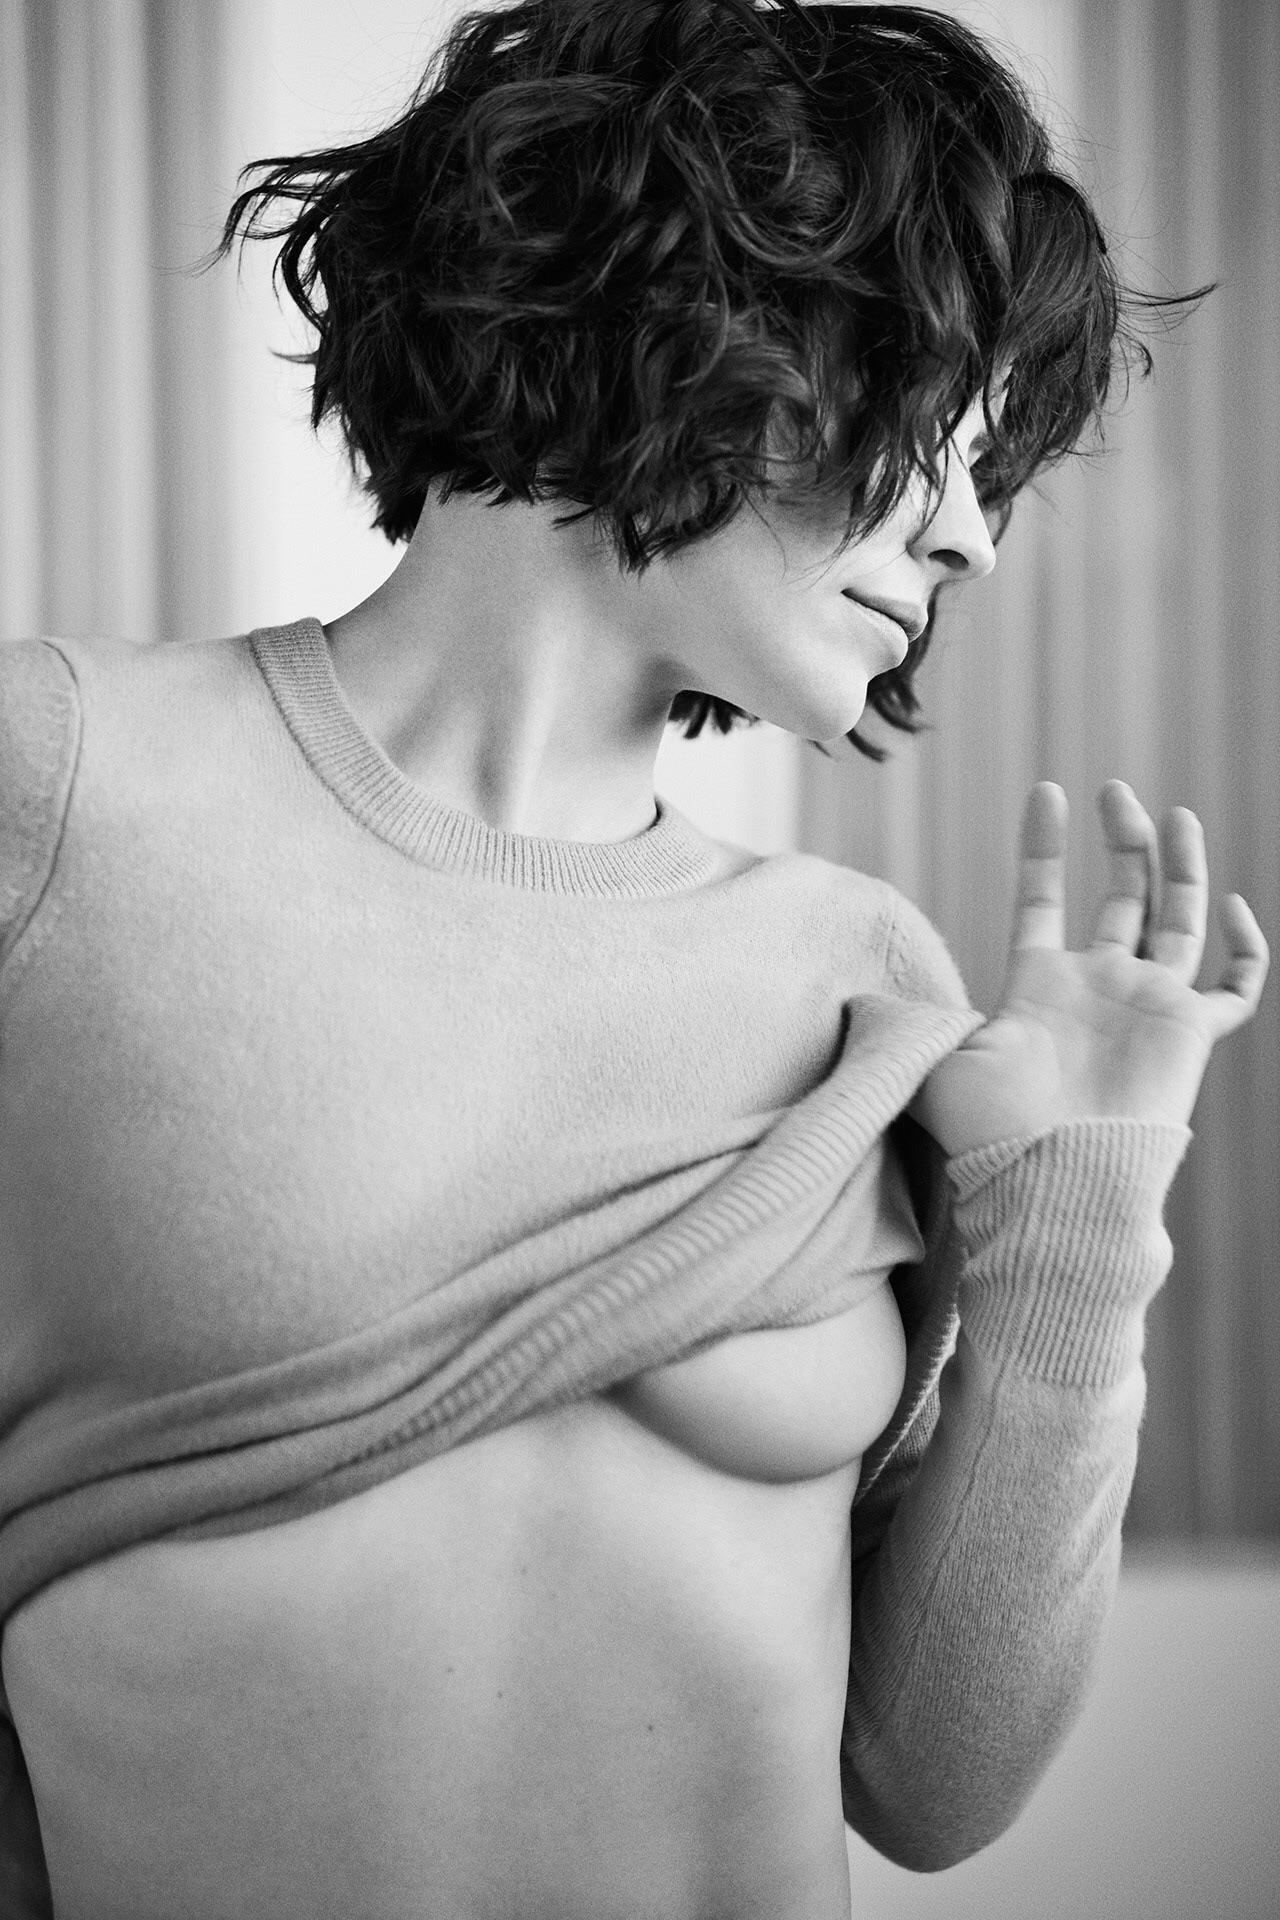 Gif hot evangeline lilly